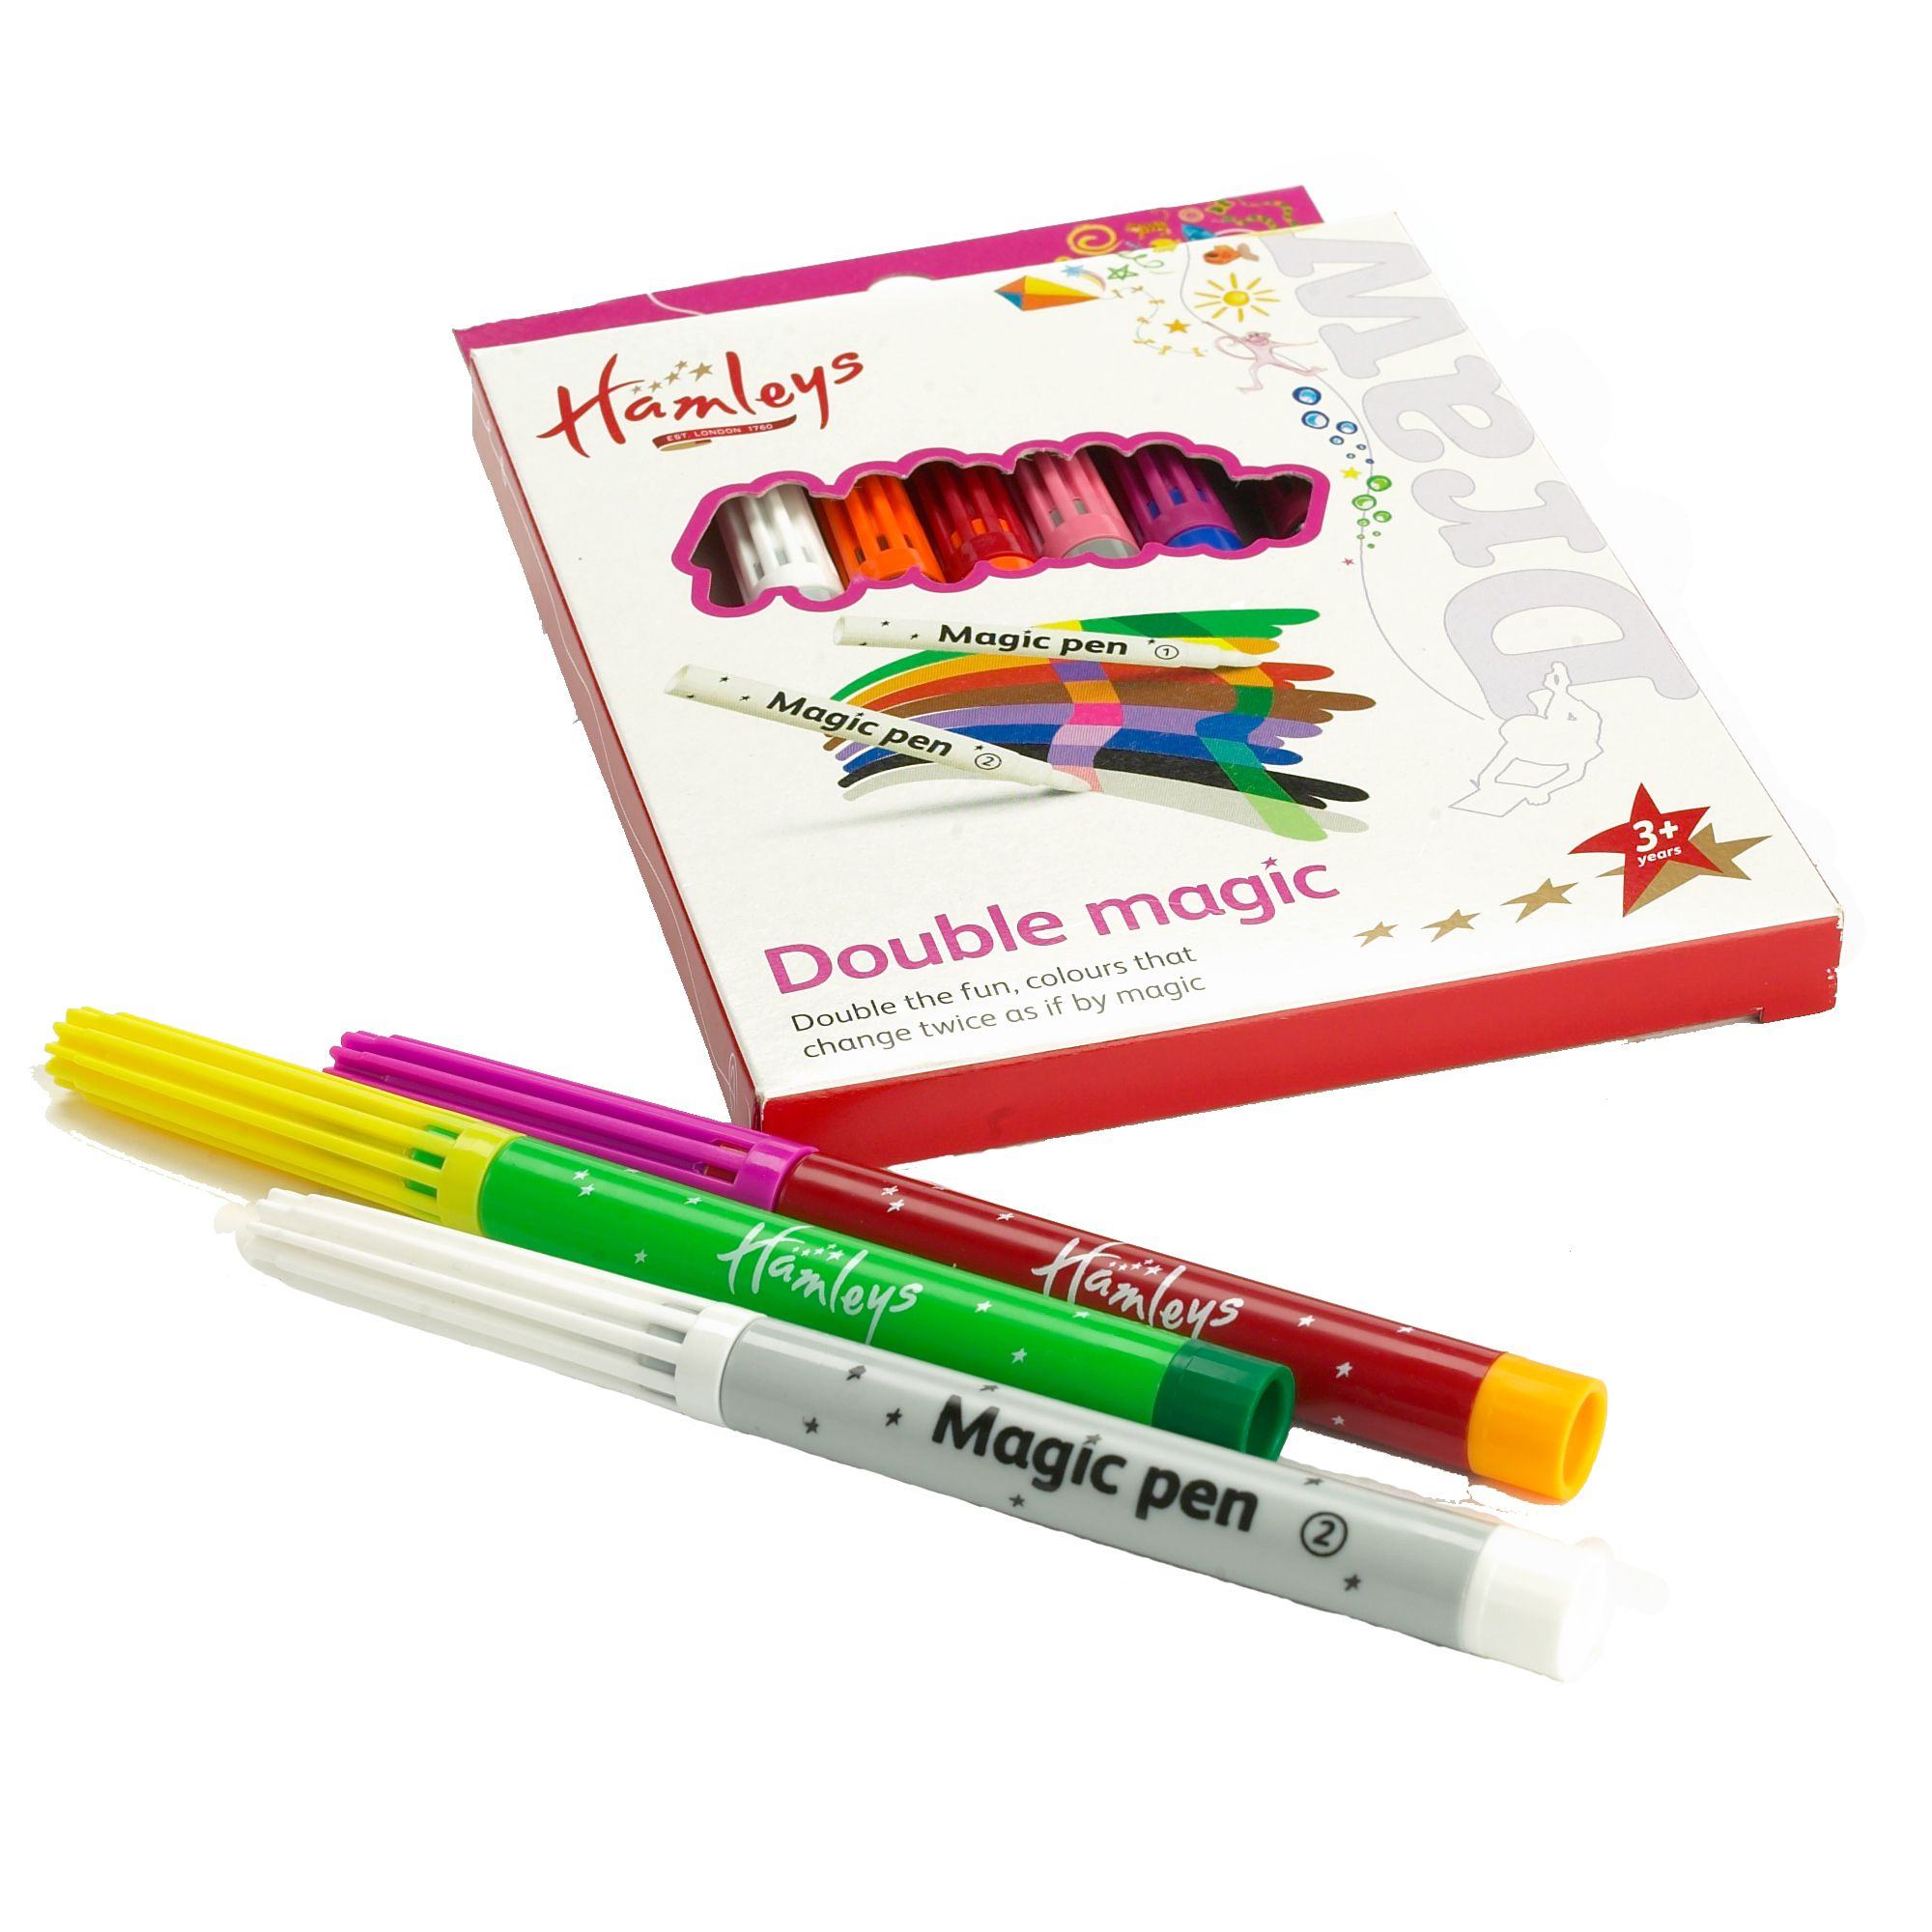 Double magic pens